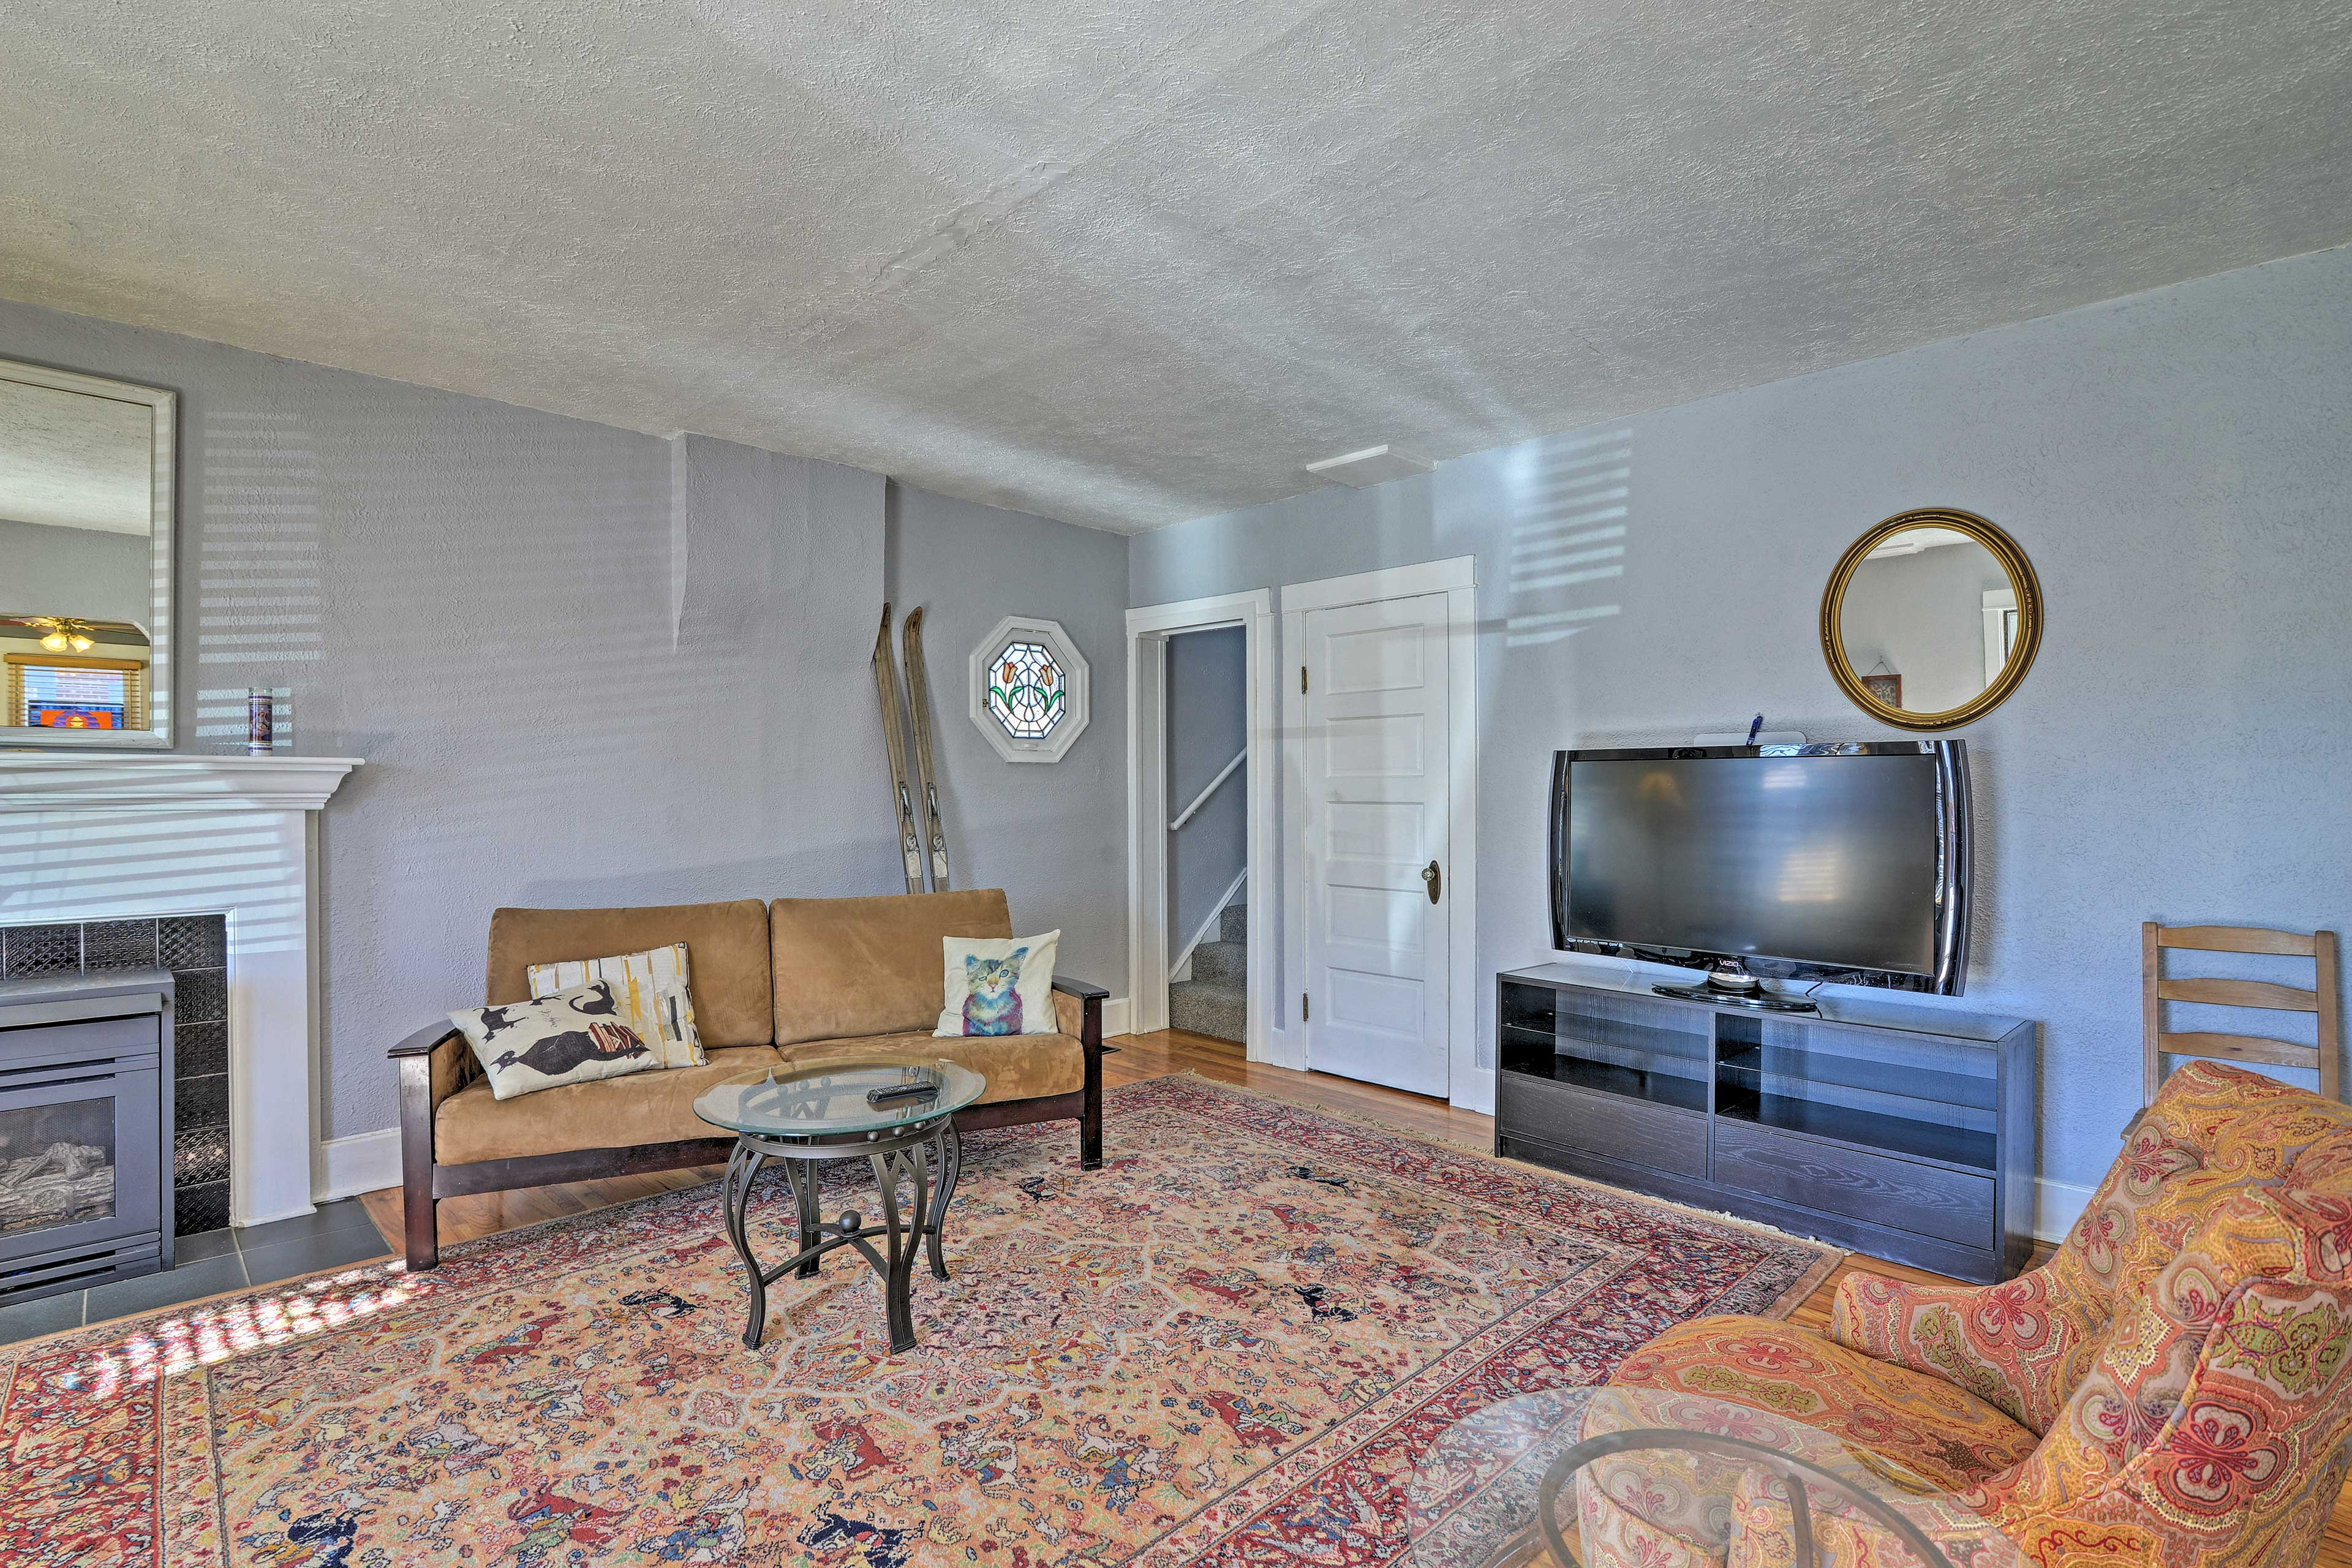 The living room has a flat-screen TV and a gas fireplace.